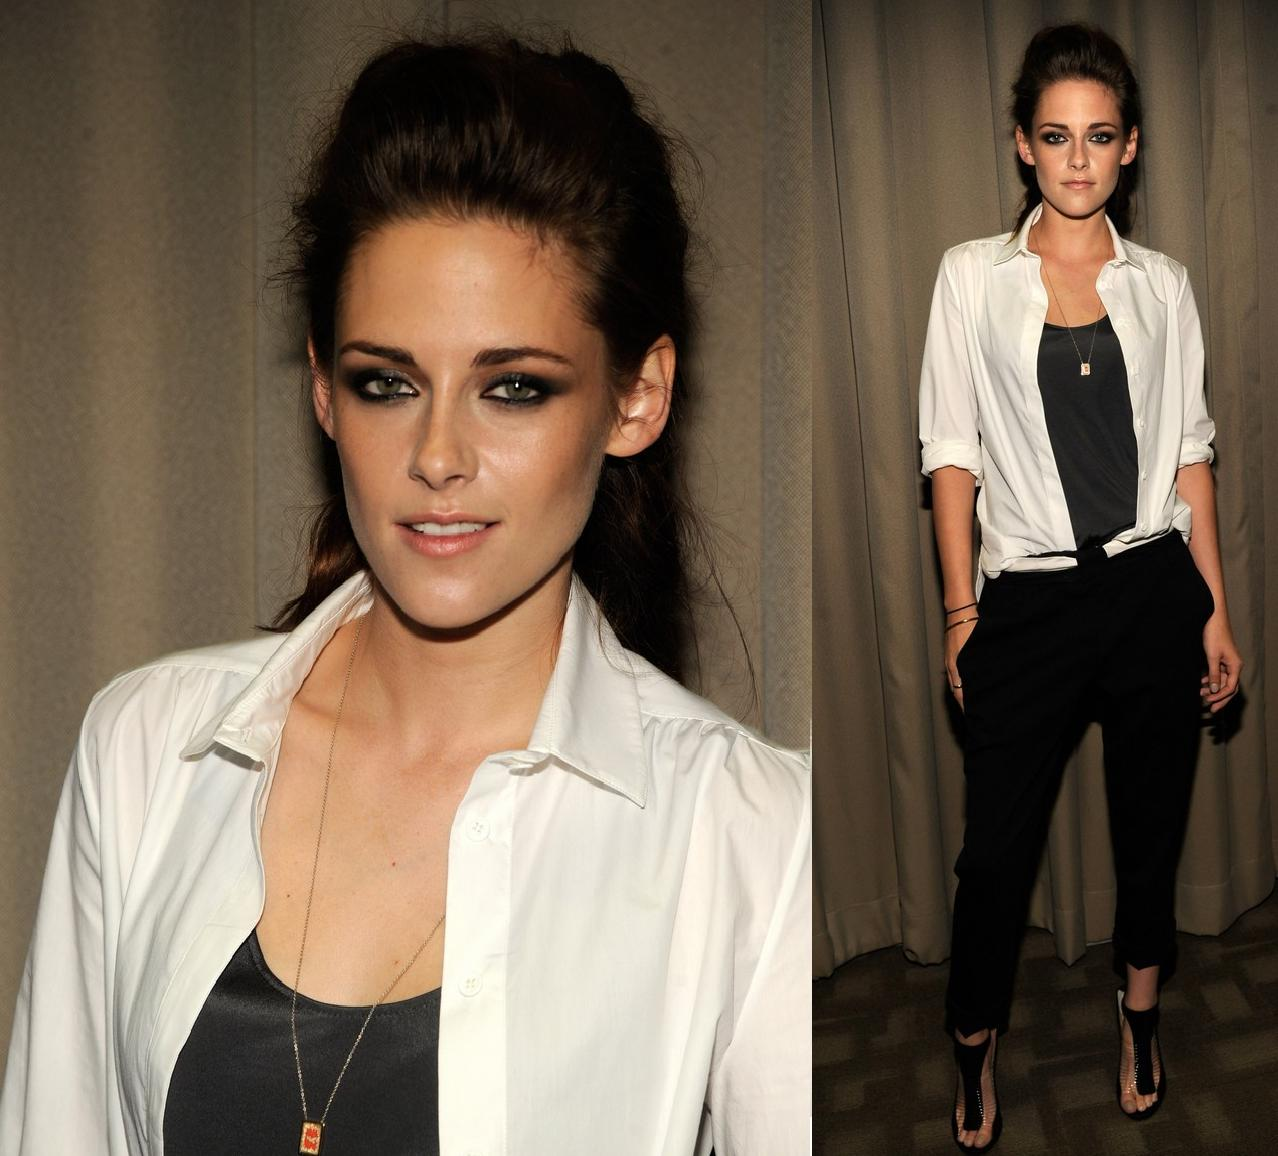 http://1.bp.blogspot.com/-PSMYGuEQR10/UE8hfRnYgZI/AAAAAAAAOeE/gznzSnE7R3s/s1600/kristen-stewart-on-the-road-nyc-screening-03.jpg